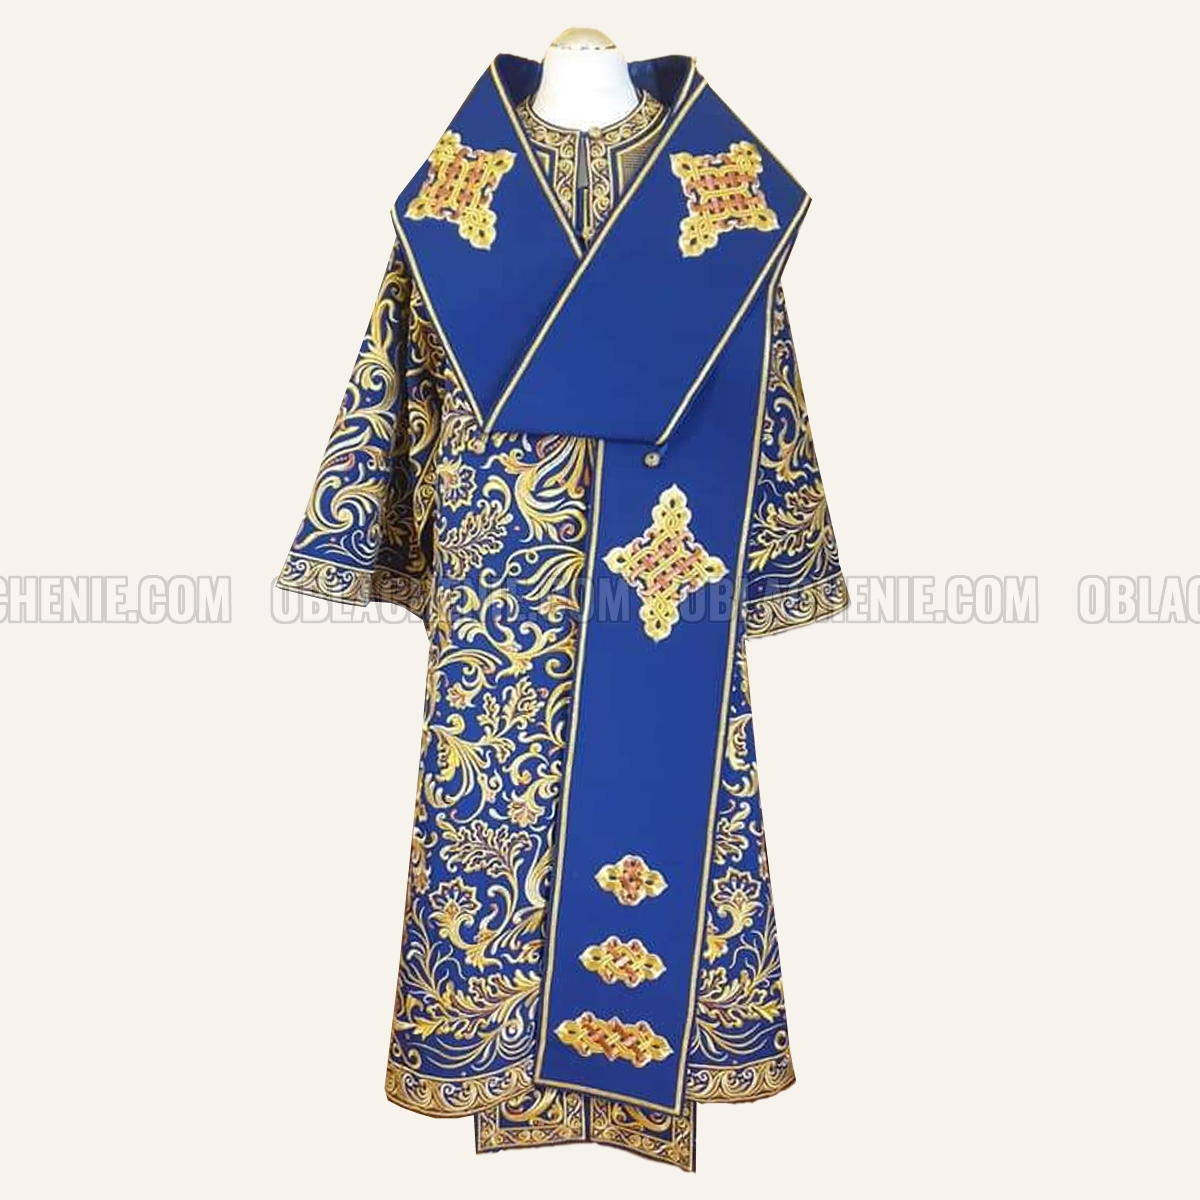 EMBROIDERED BISHOP'S VESTMENT 10896